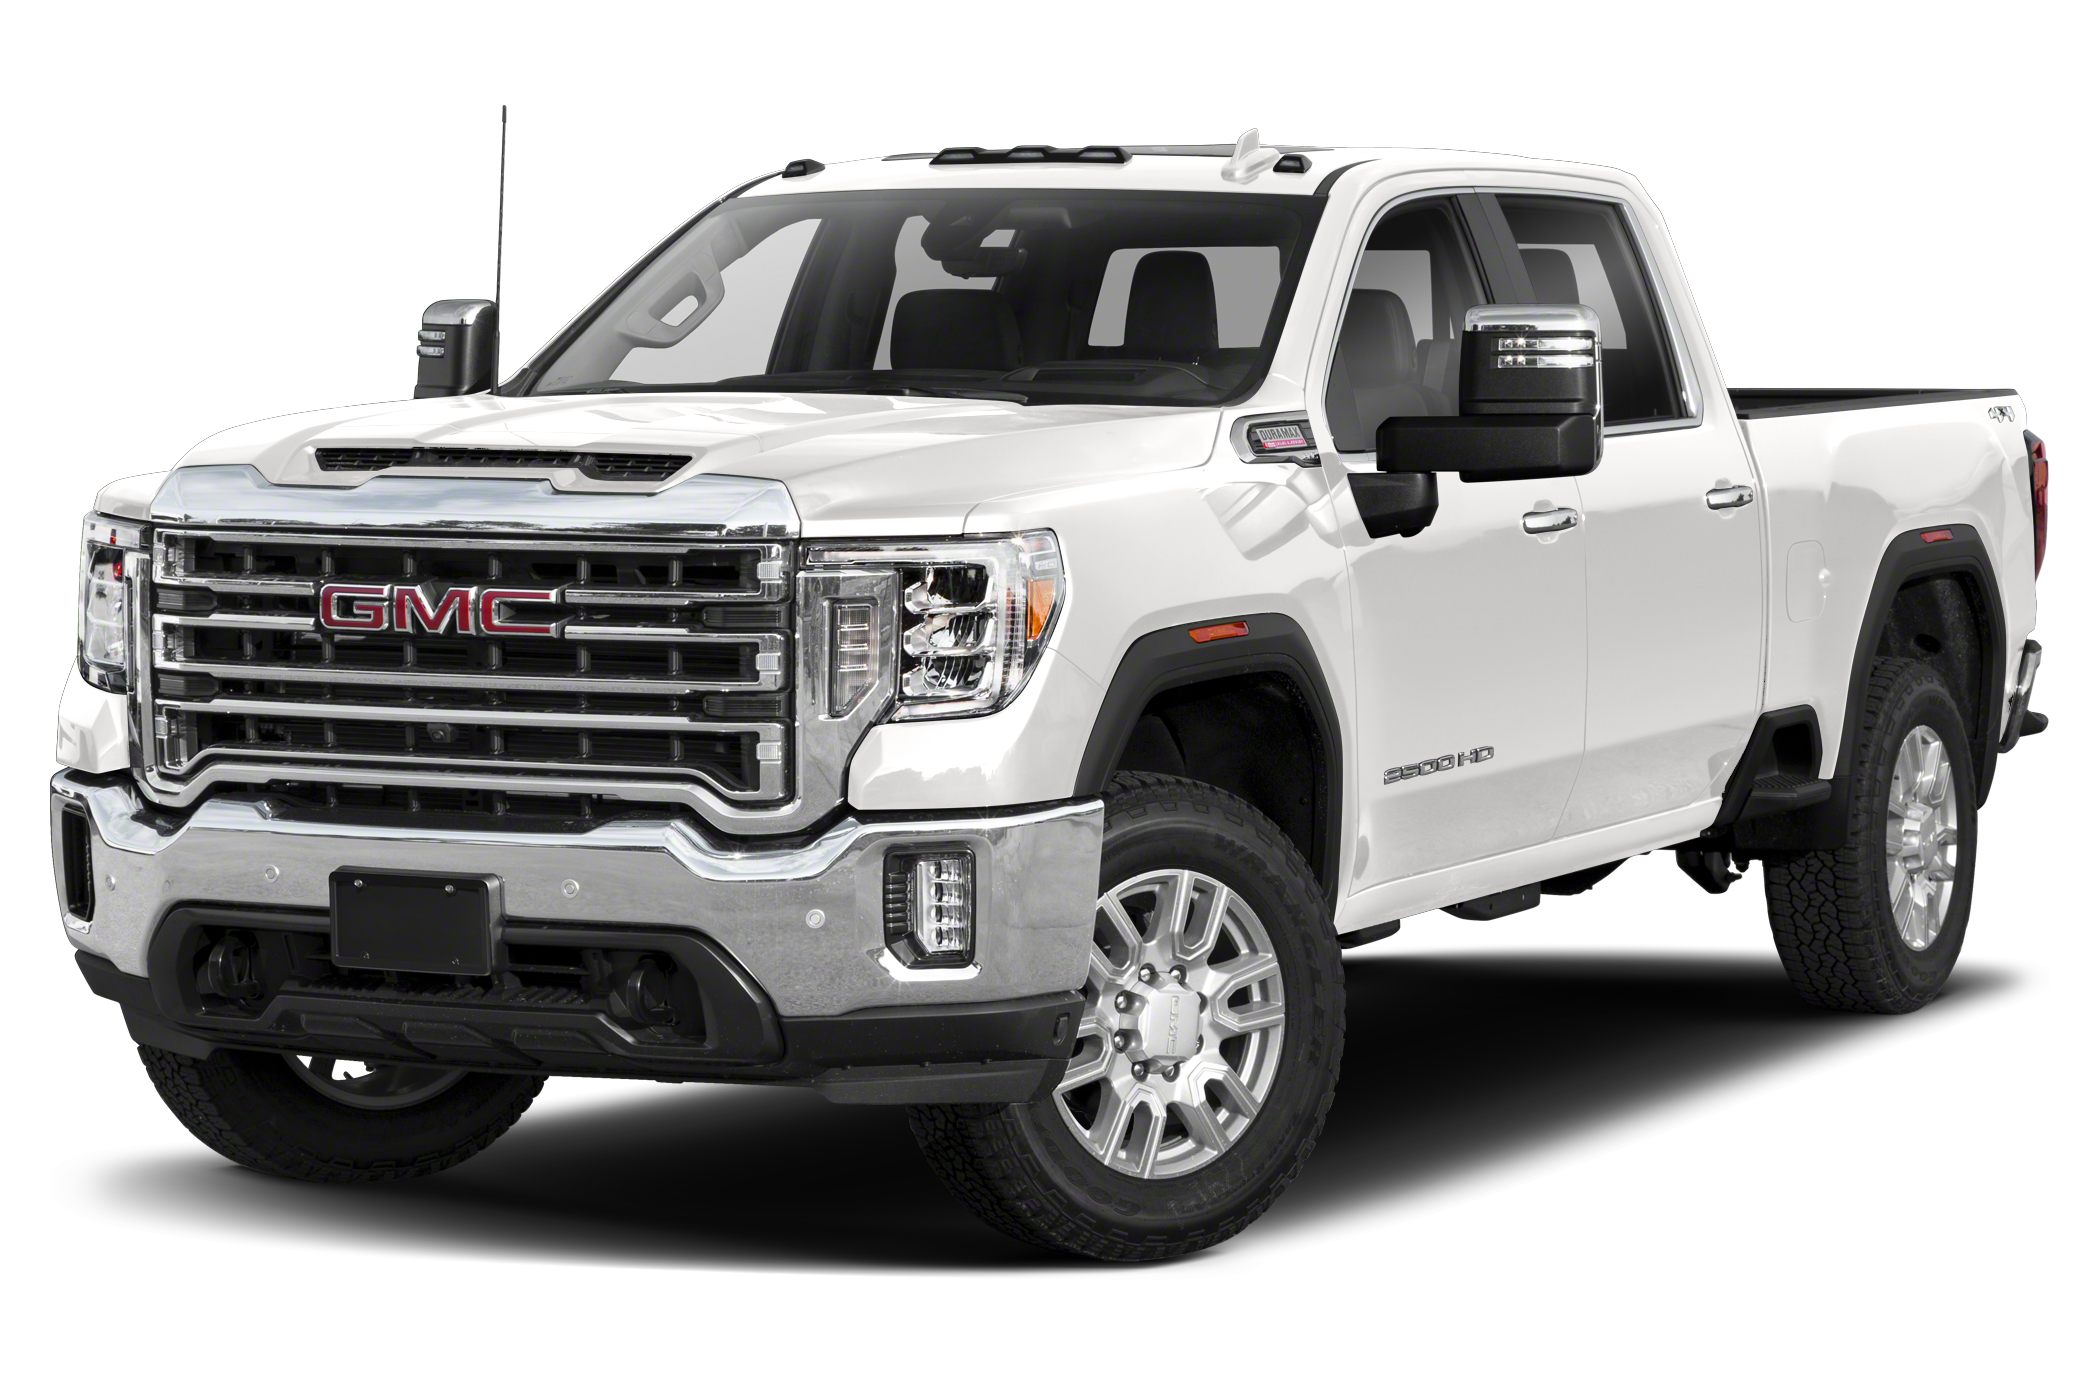 2021 Gmc Sierra 2500hd Denali 4x4 Crew Cab 6 75 Ft Box 158 9 In Wb For Sale